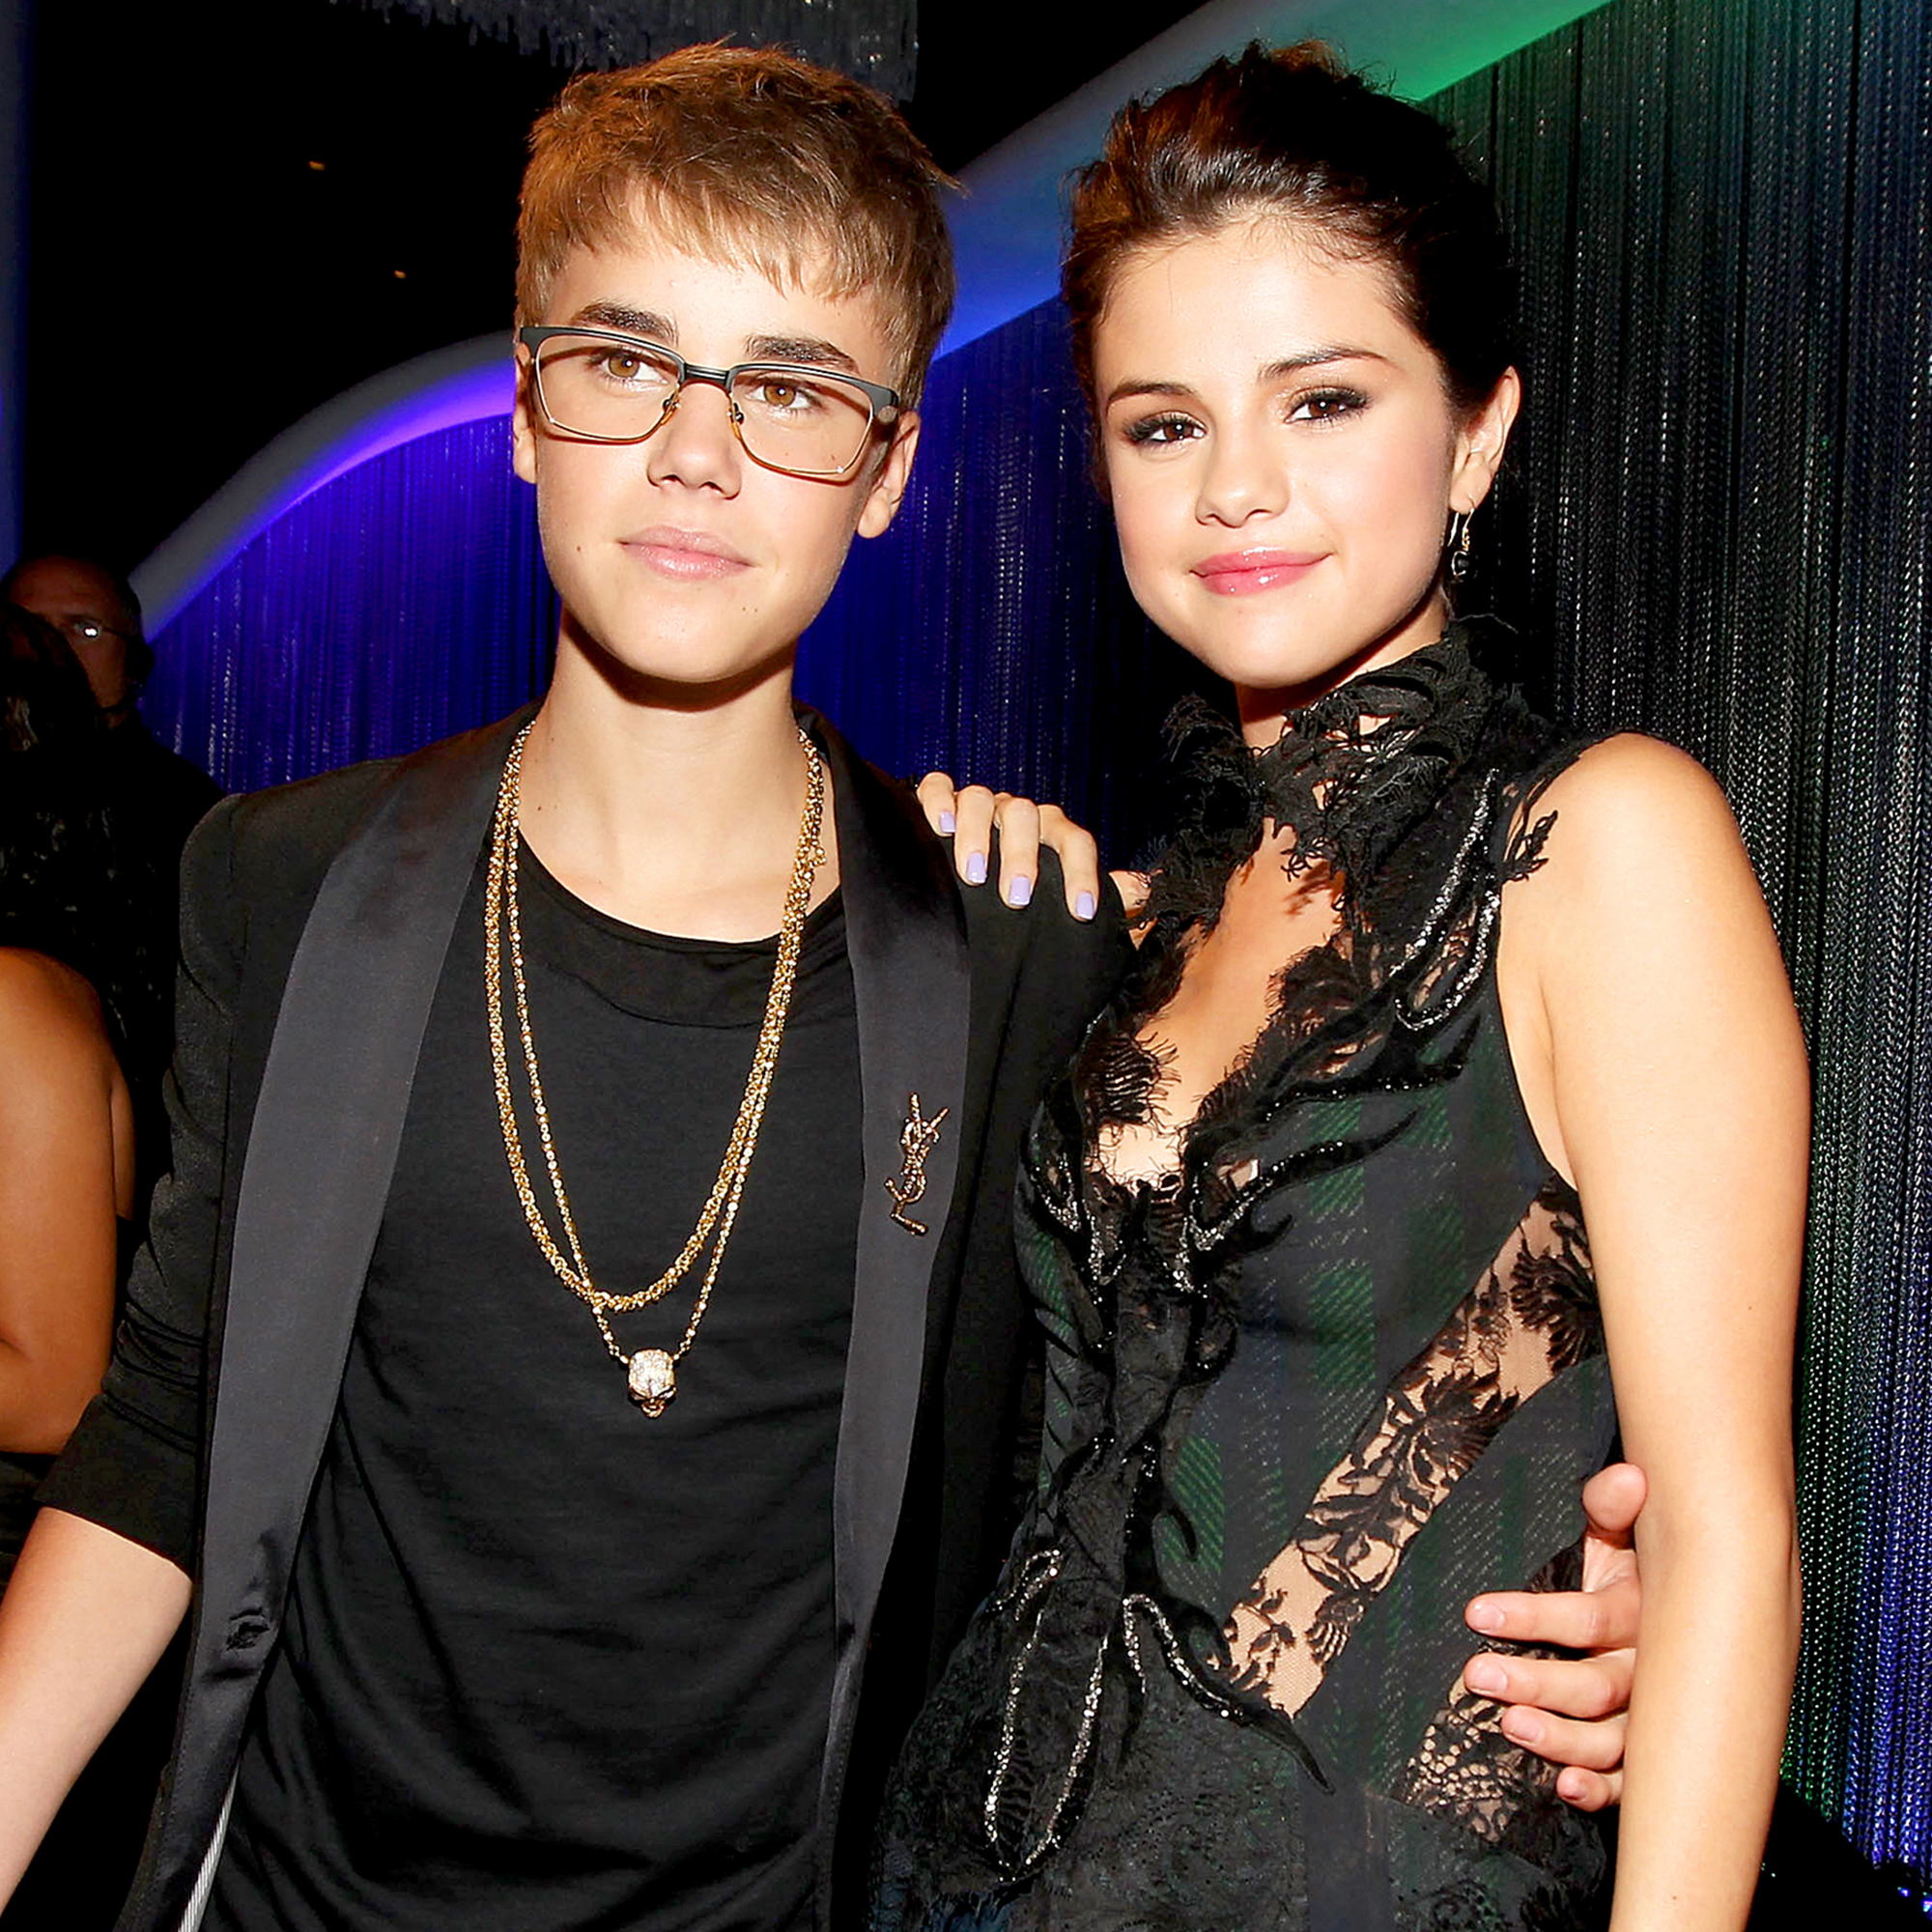 Selena Gomez's mother 'not happy' with Justin Bieber reunion